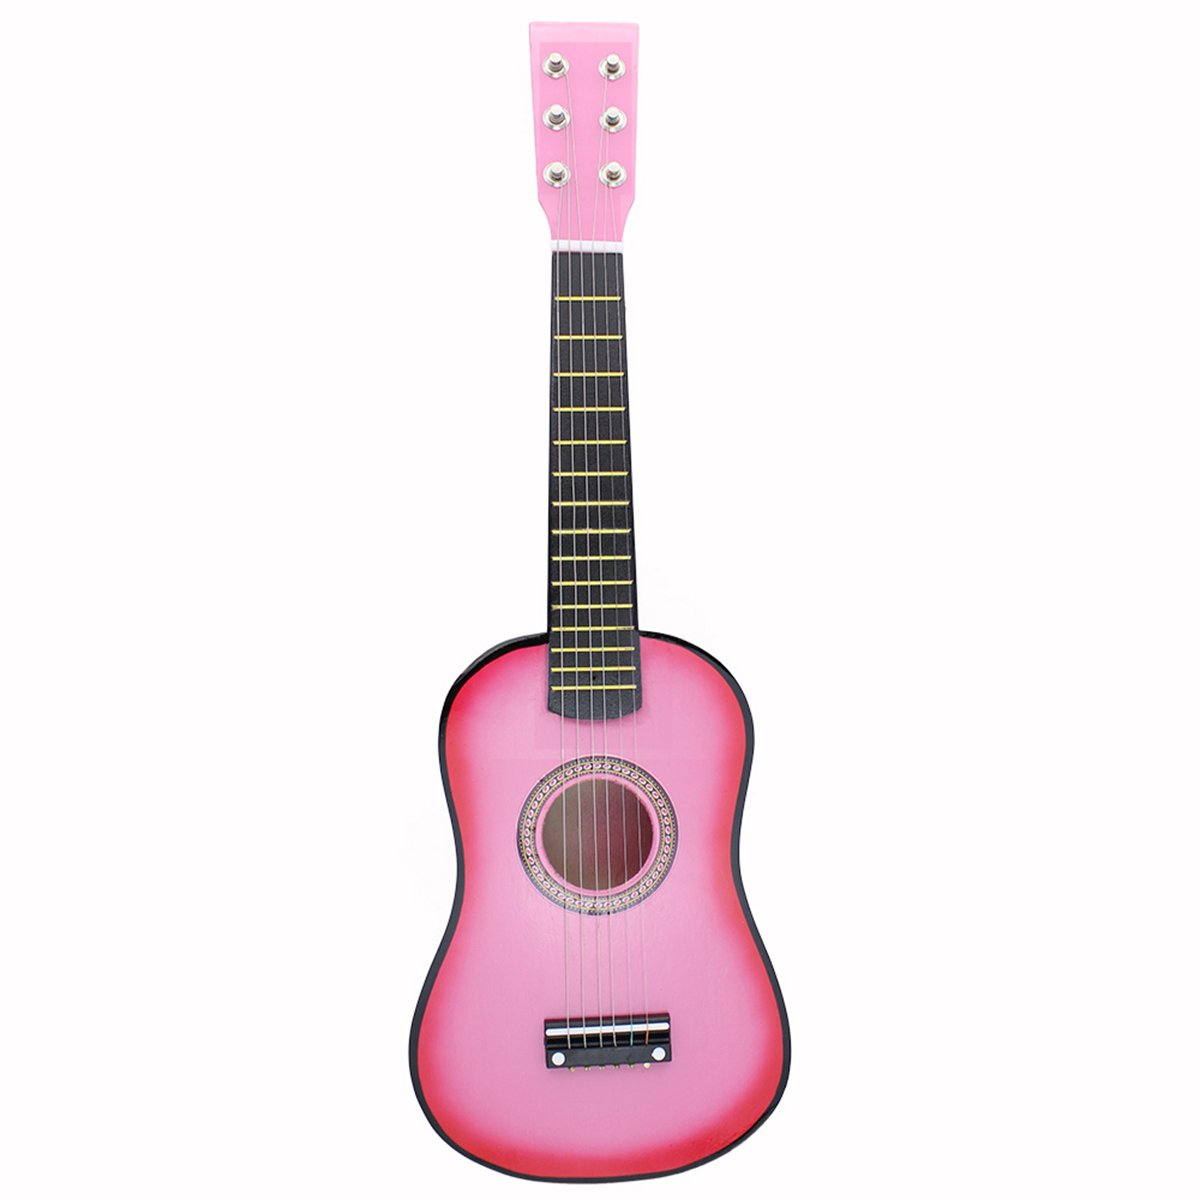 Blueseason Acoustic Guitar (000-BT-GA2300-PK)